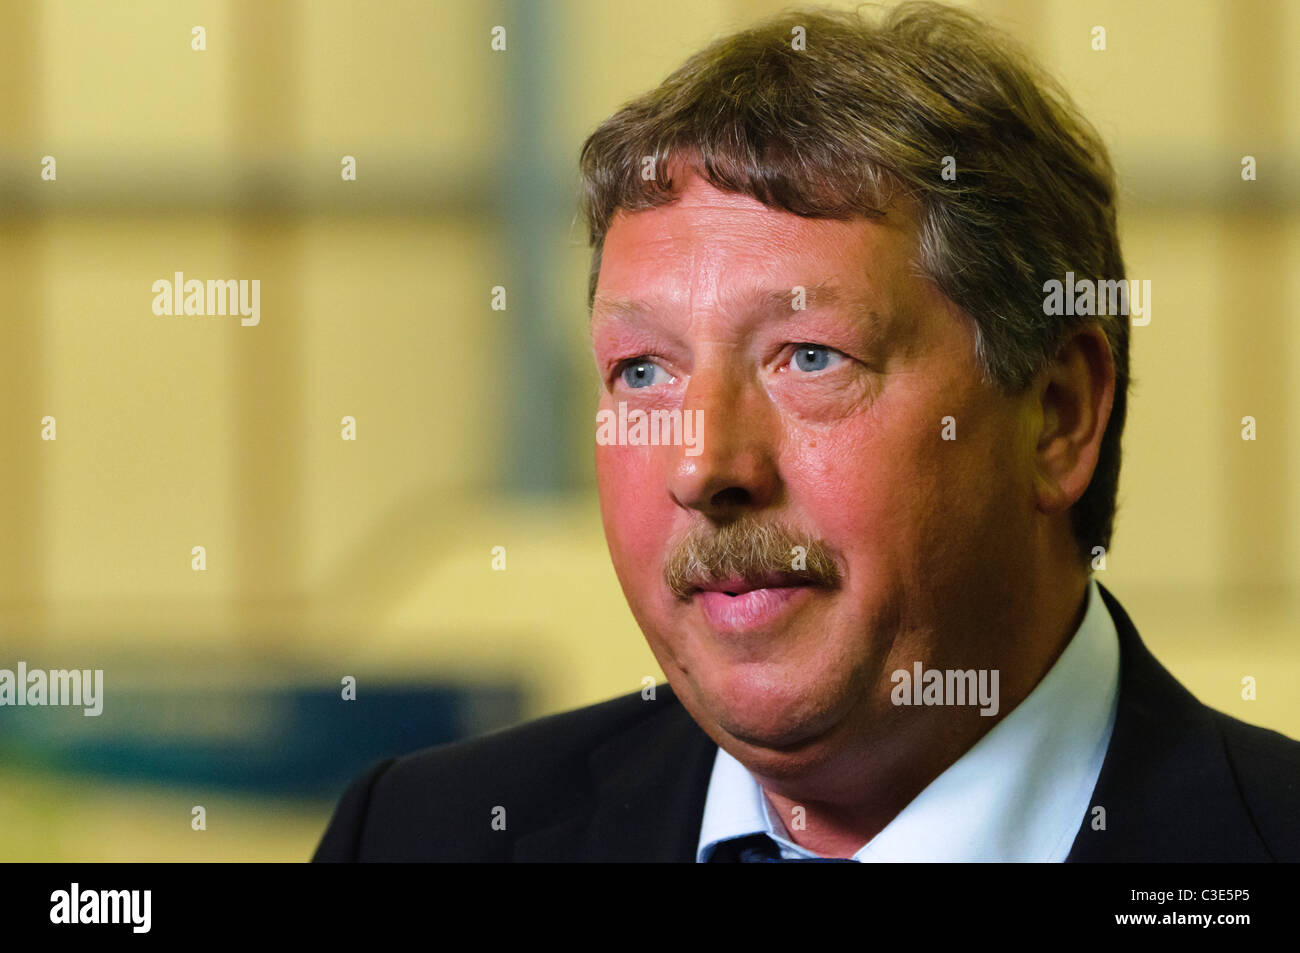 Sammy Wilson MP and MLA for East Antrim.  Member of the Democratic Unionist Party - Stock Image